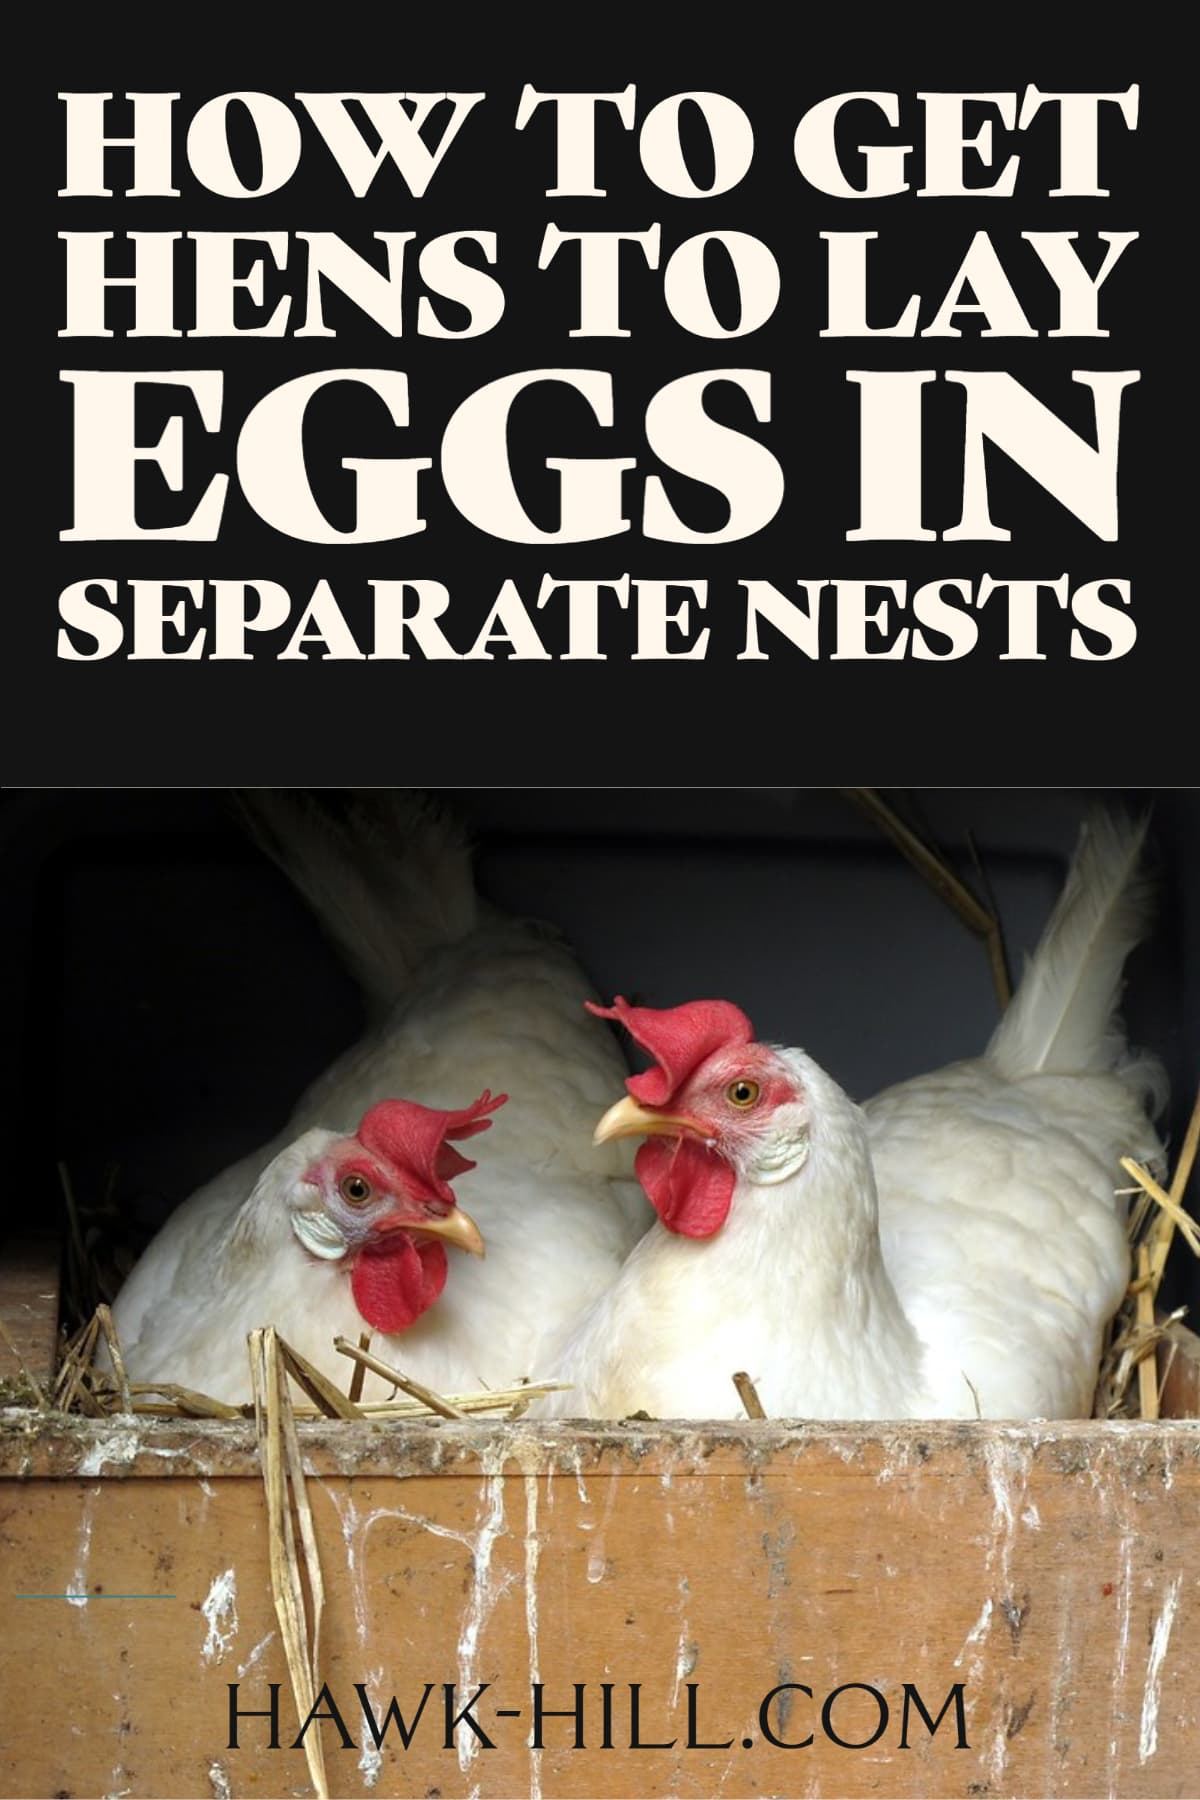 Tips for increasing egg production and decreasing egg breakage by discouraging nest-sharing